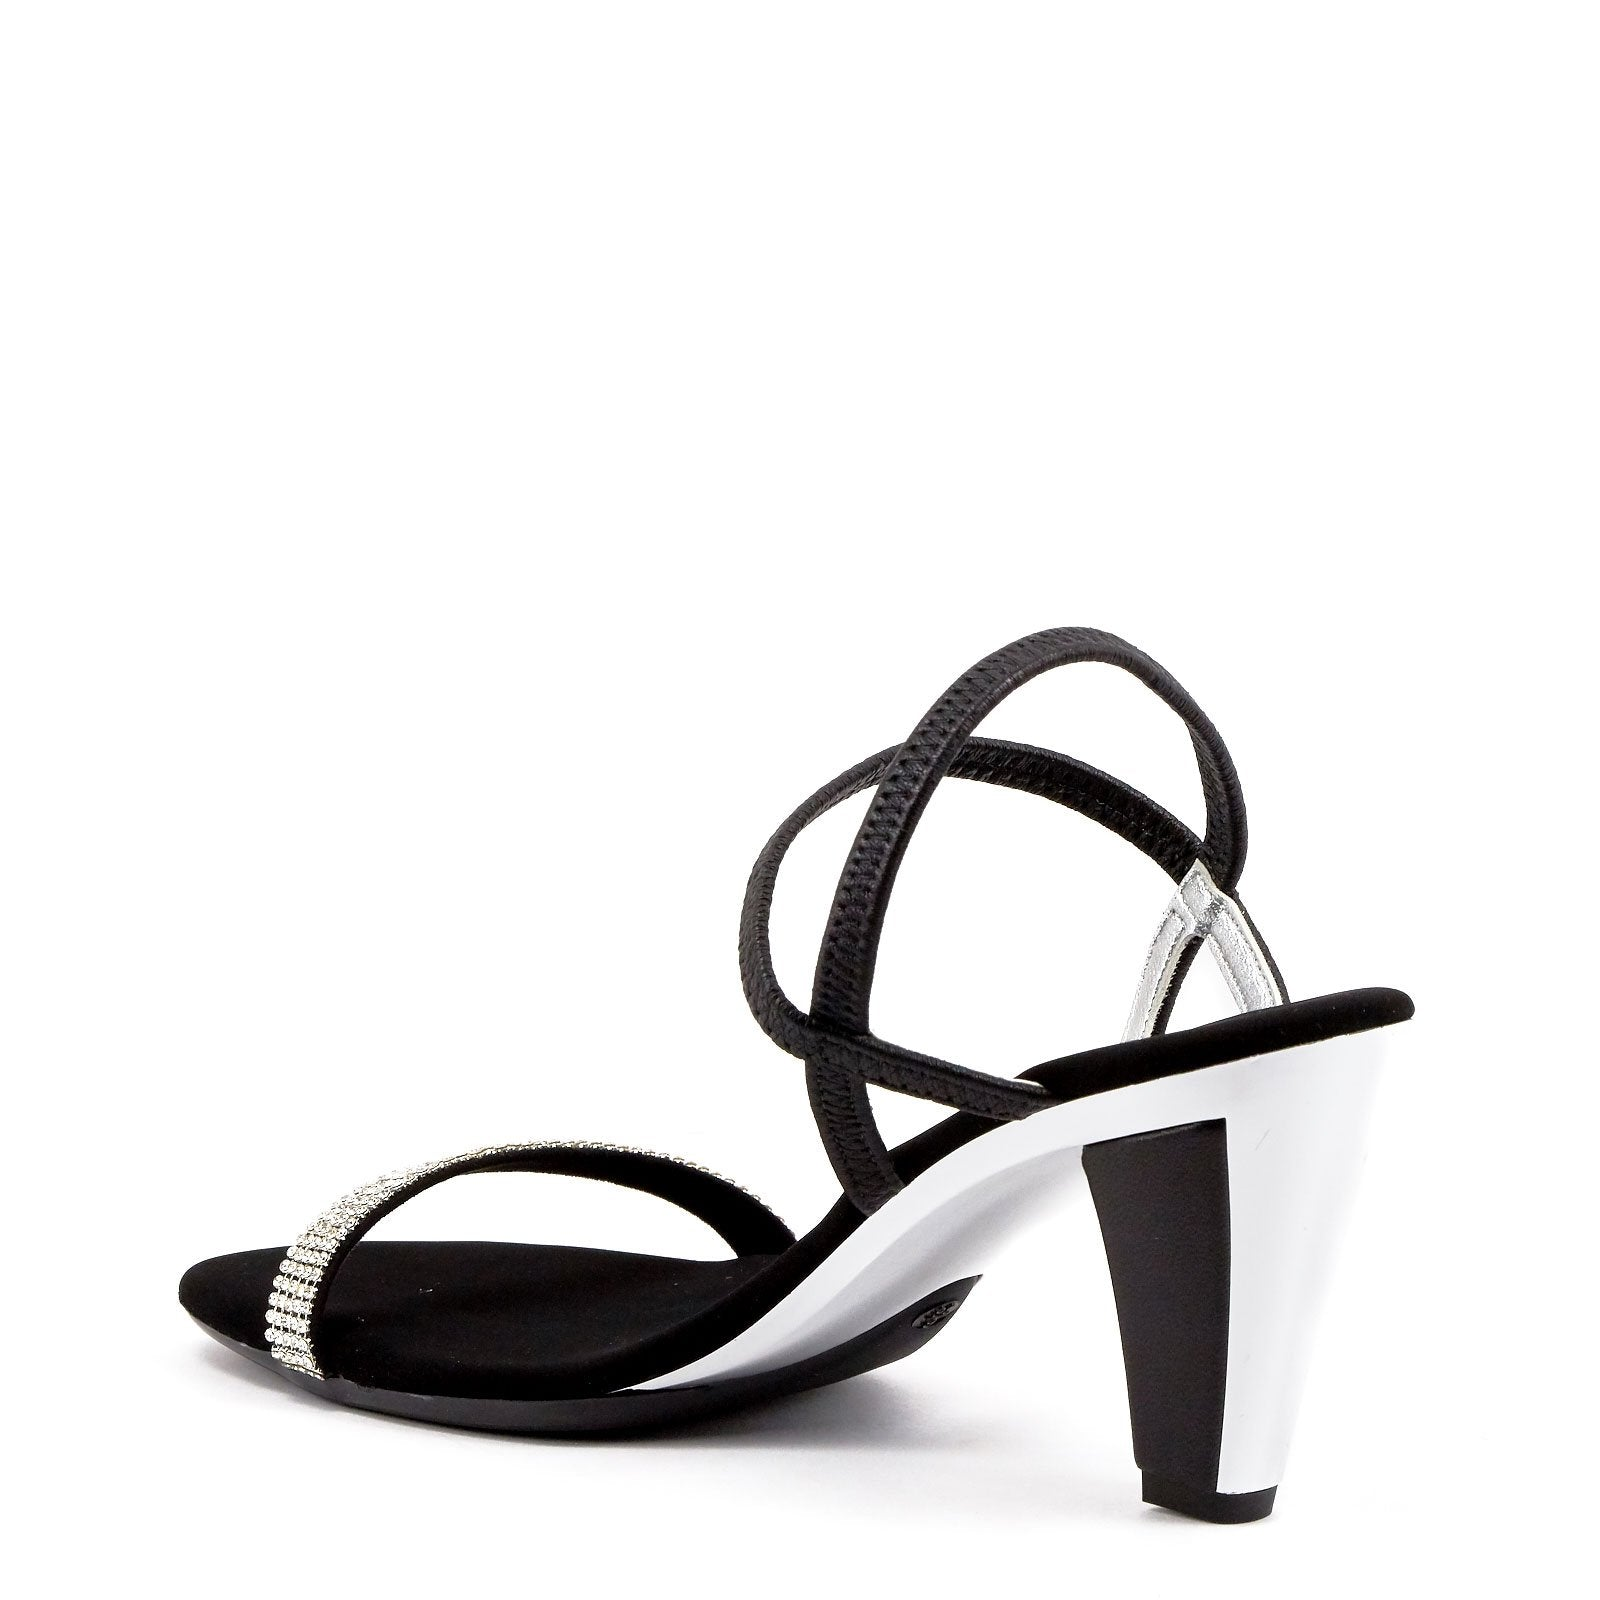 Black Strappy Sandals By Onex Shoes